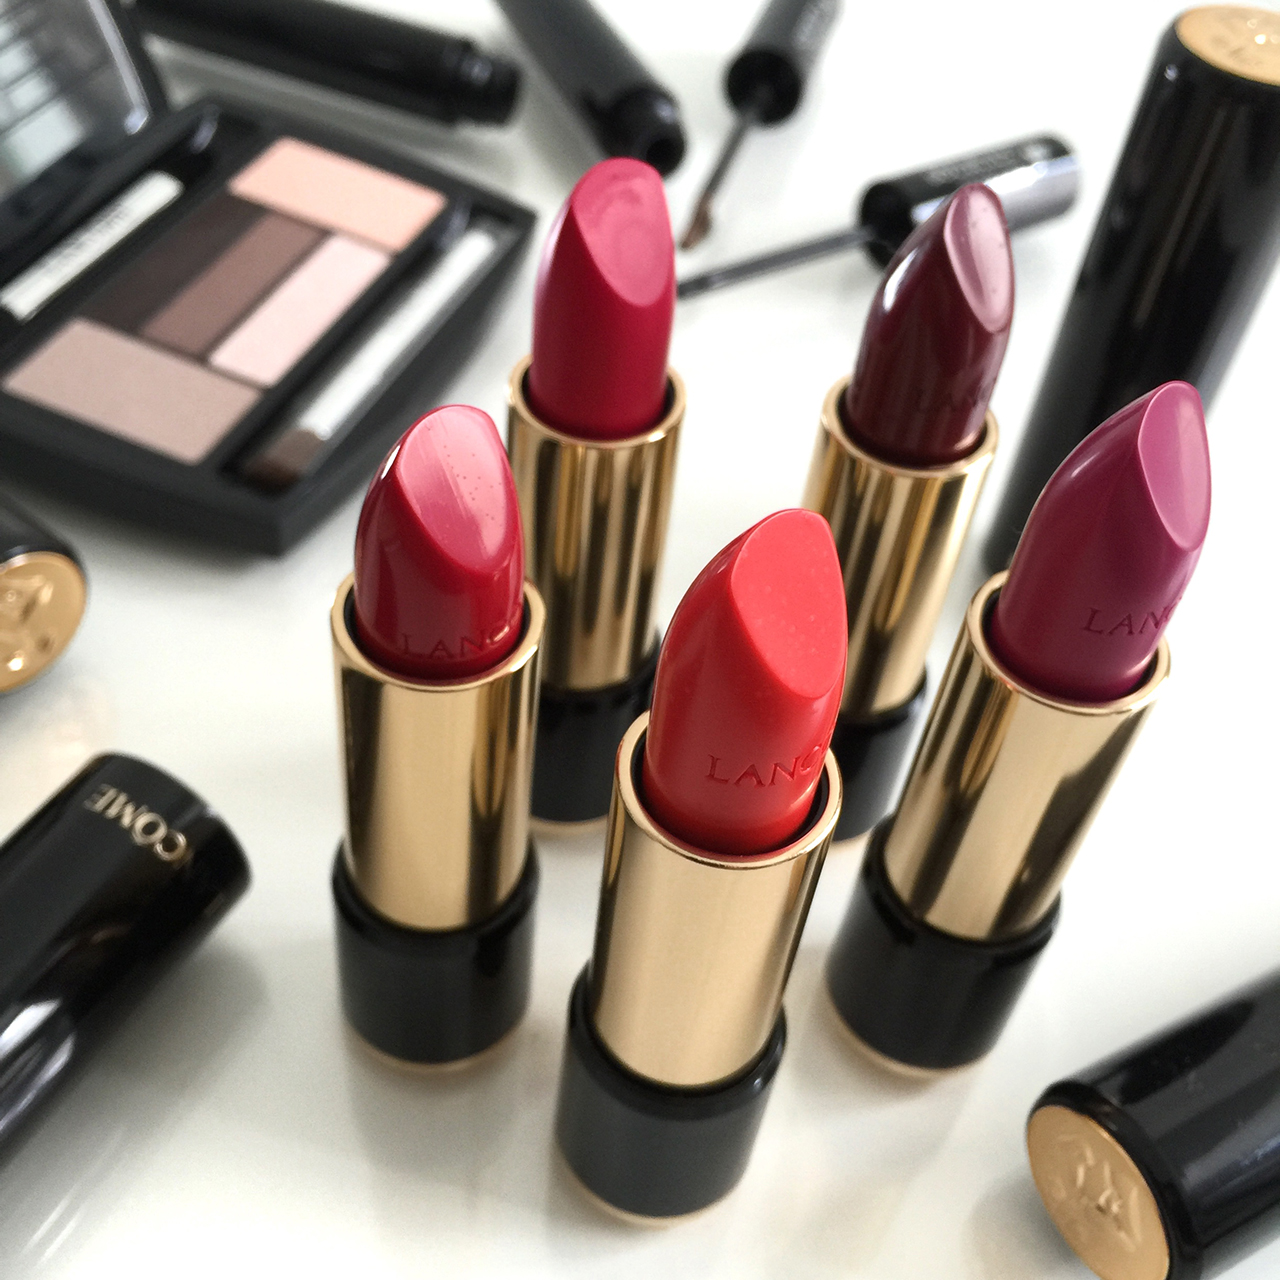 Lancome L'Absolu Rouge Collection